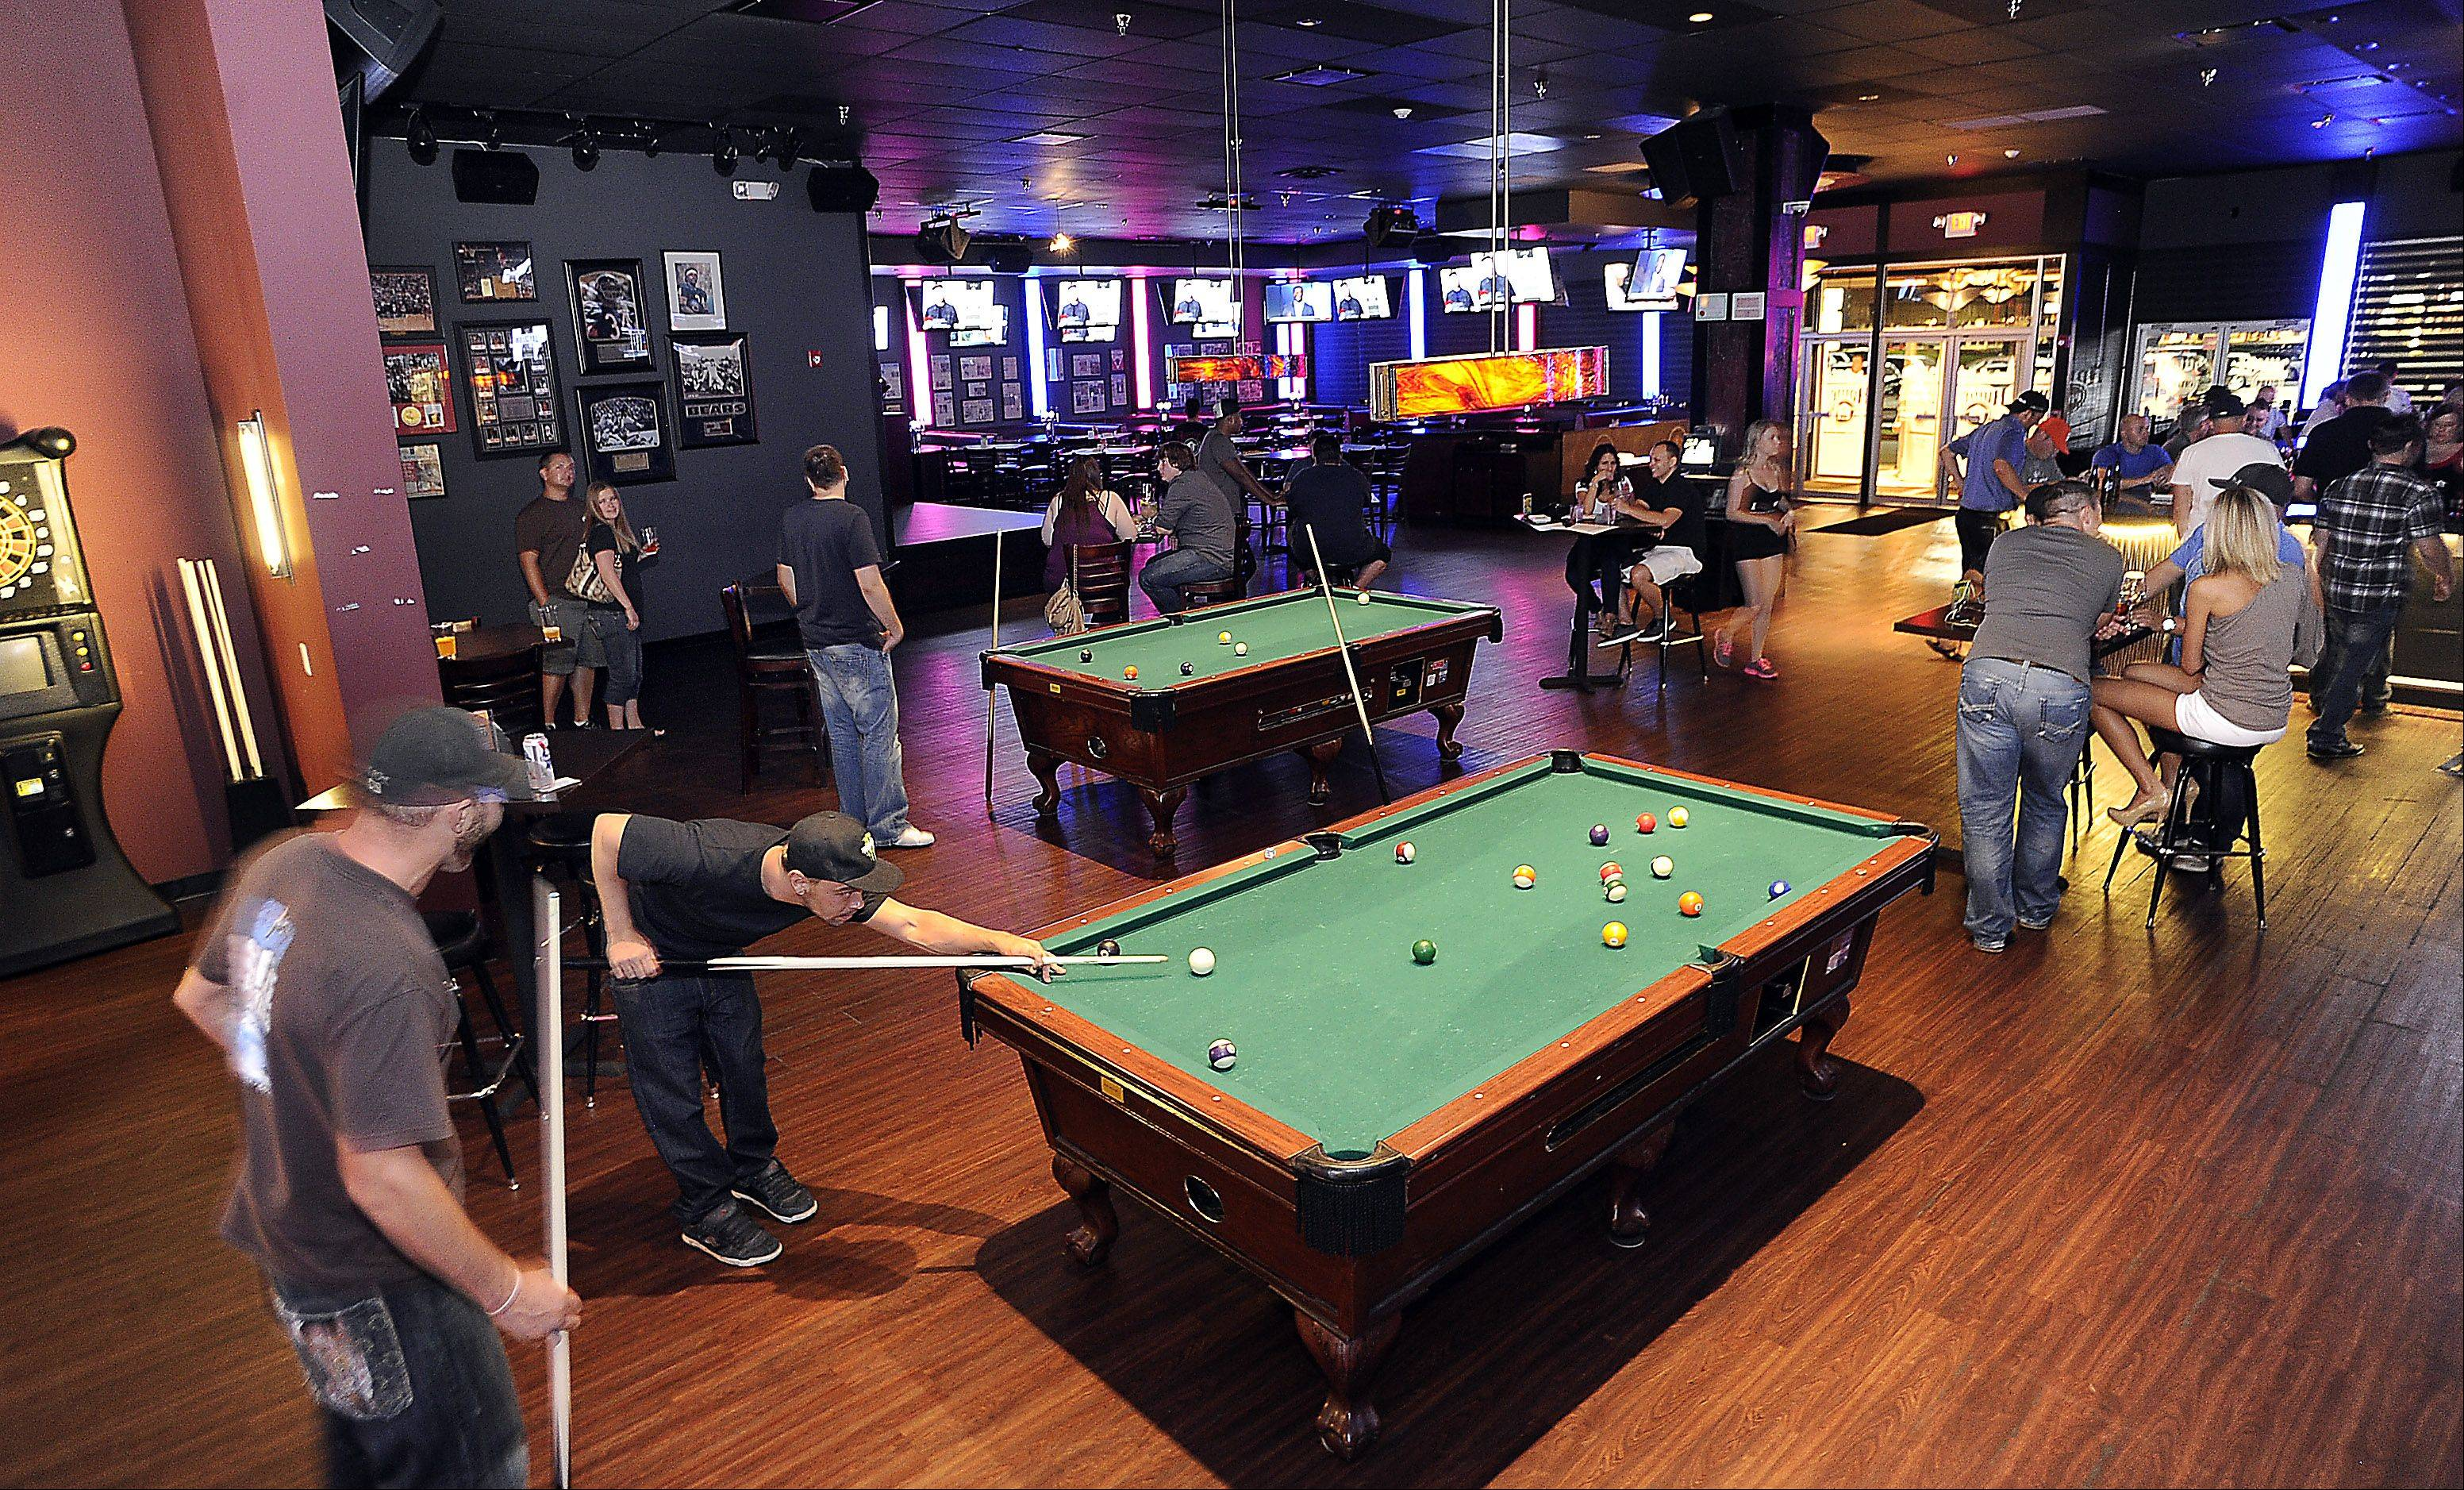 Pool tables provide a distraction in the sports bar side of the House of Music & Entertainment. A separate area hosts live entertainment.